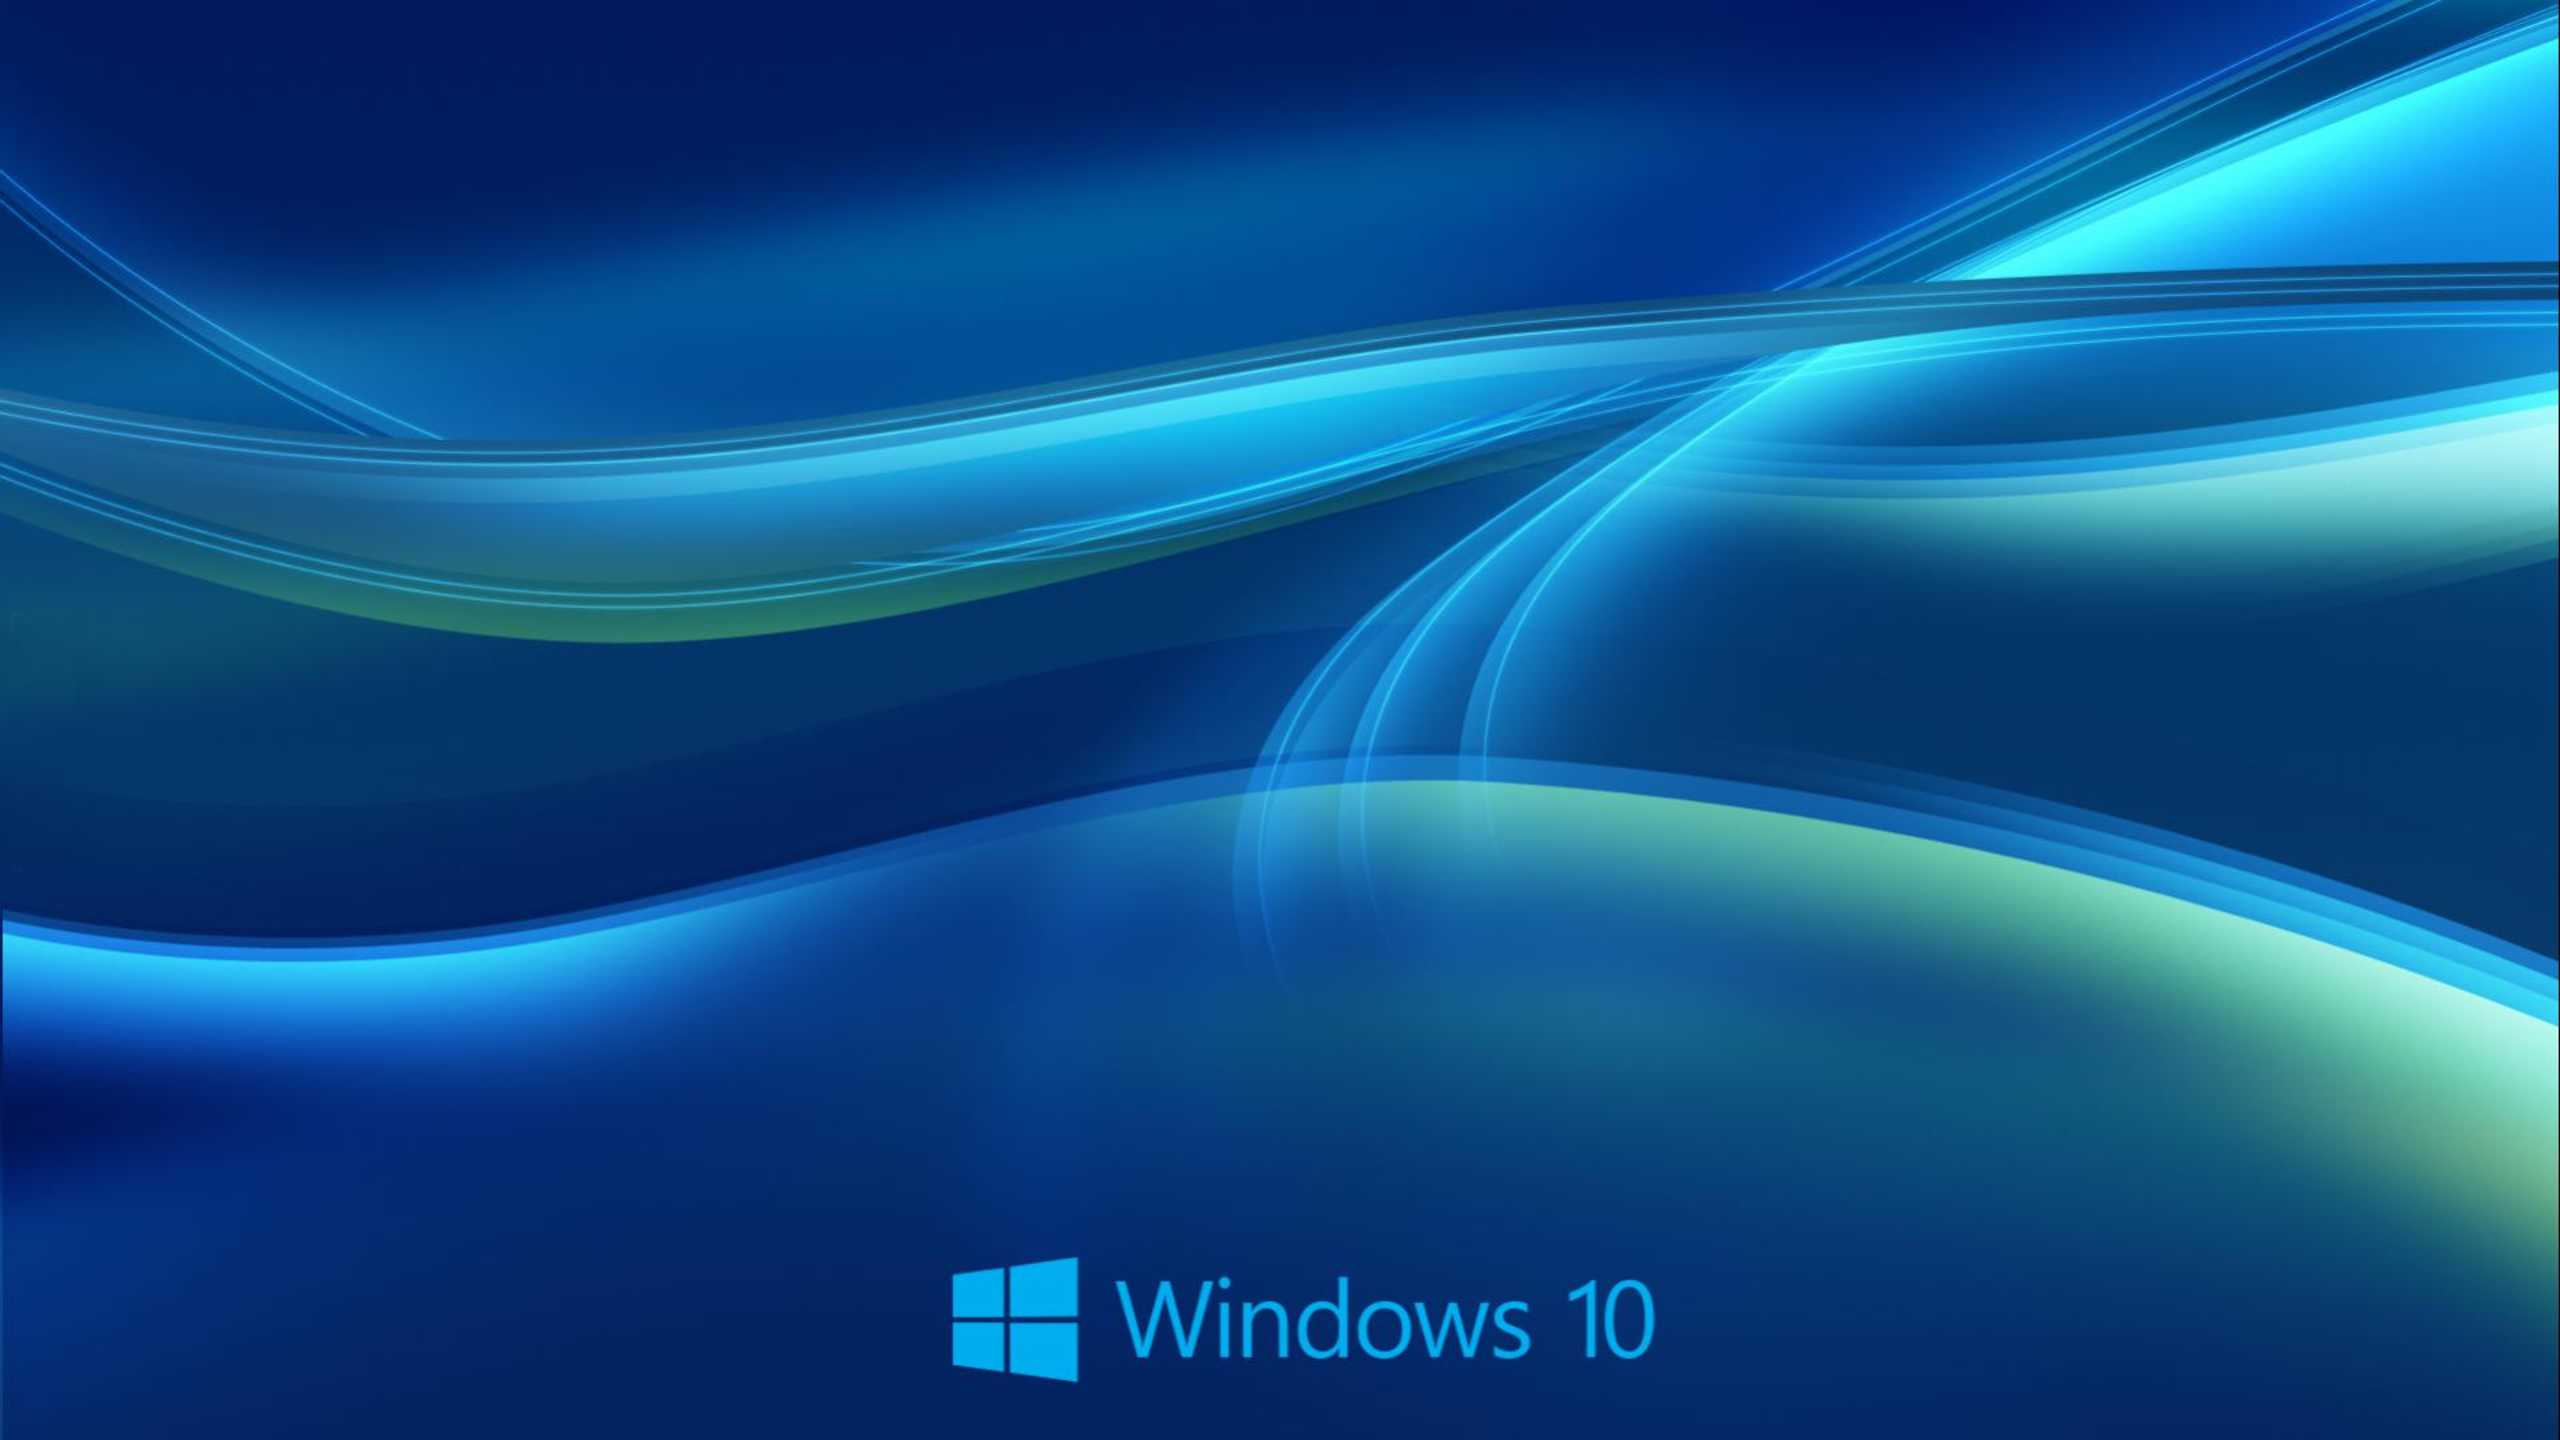 Wallpaper 2560x1440 HD blue lines   Beautiful windows 10 wallpaper 2560x1440